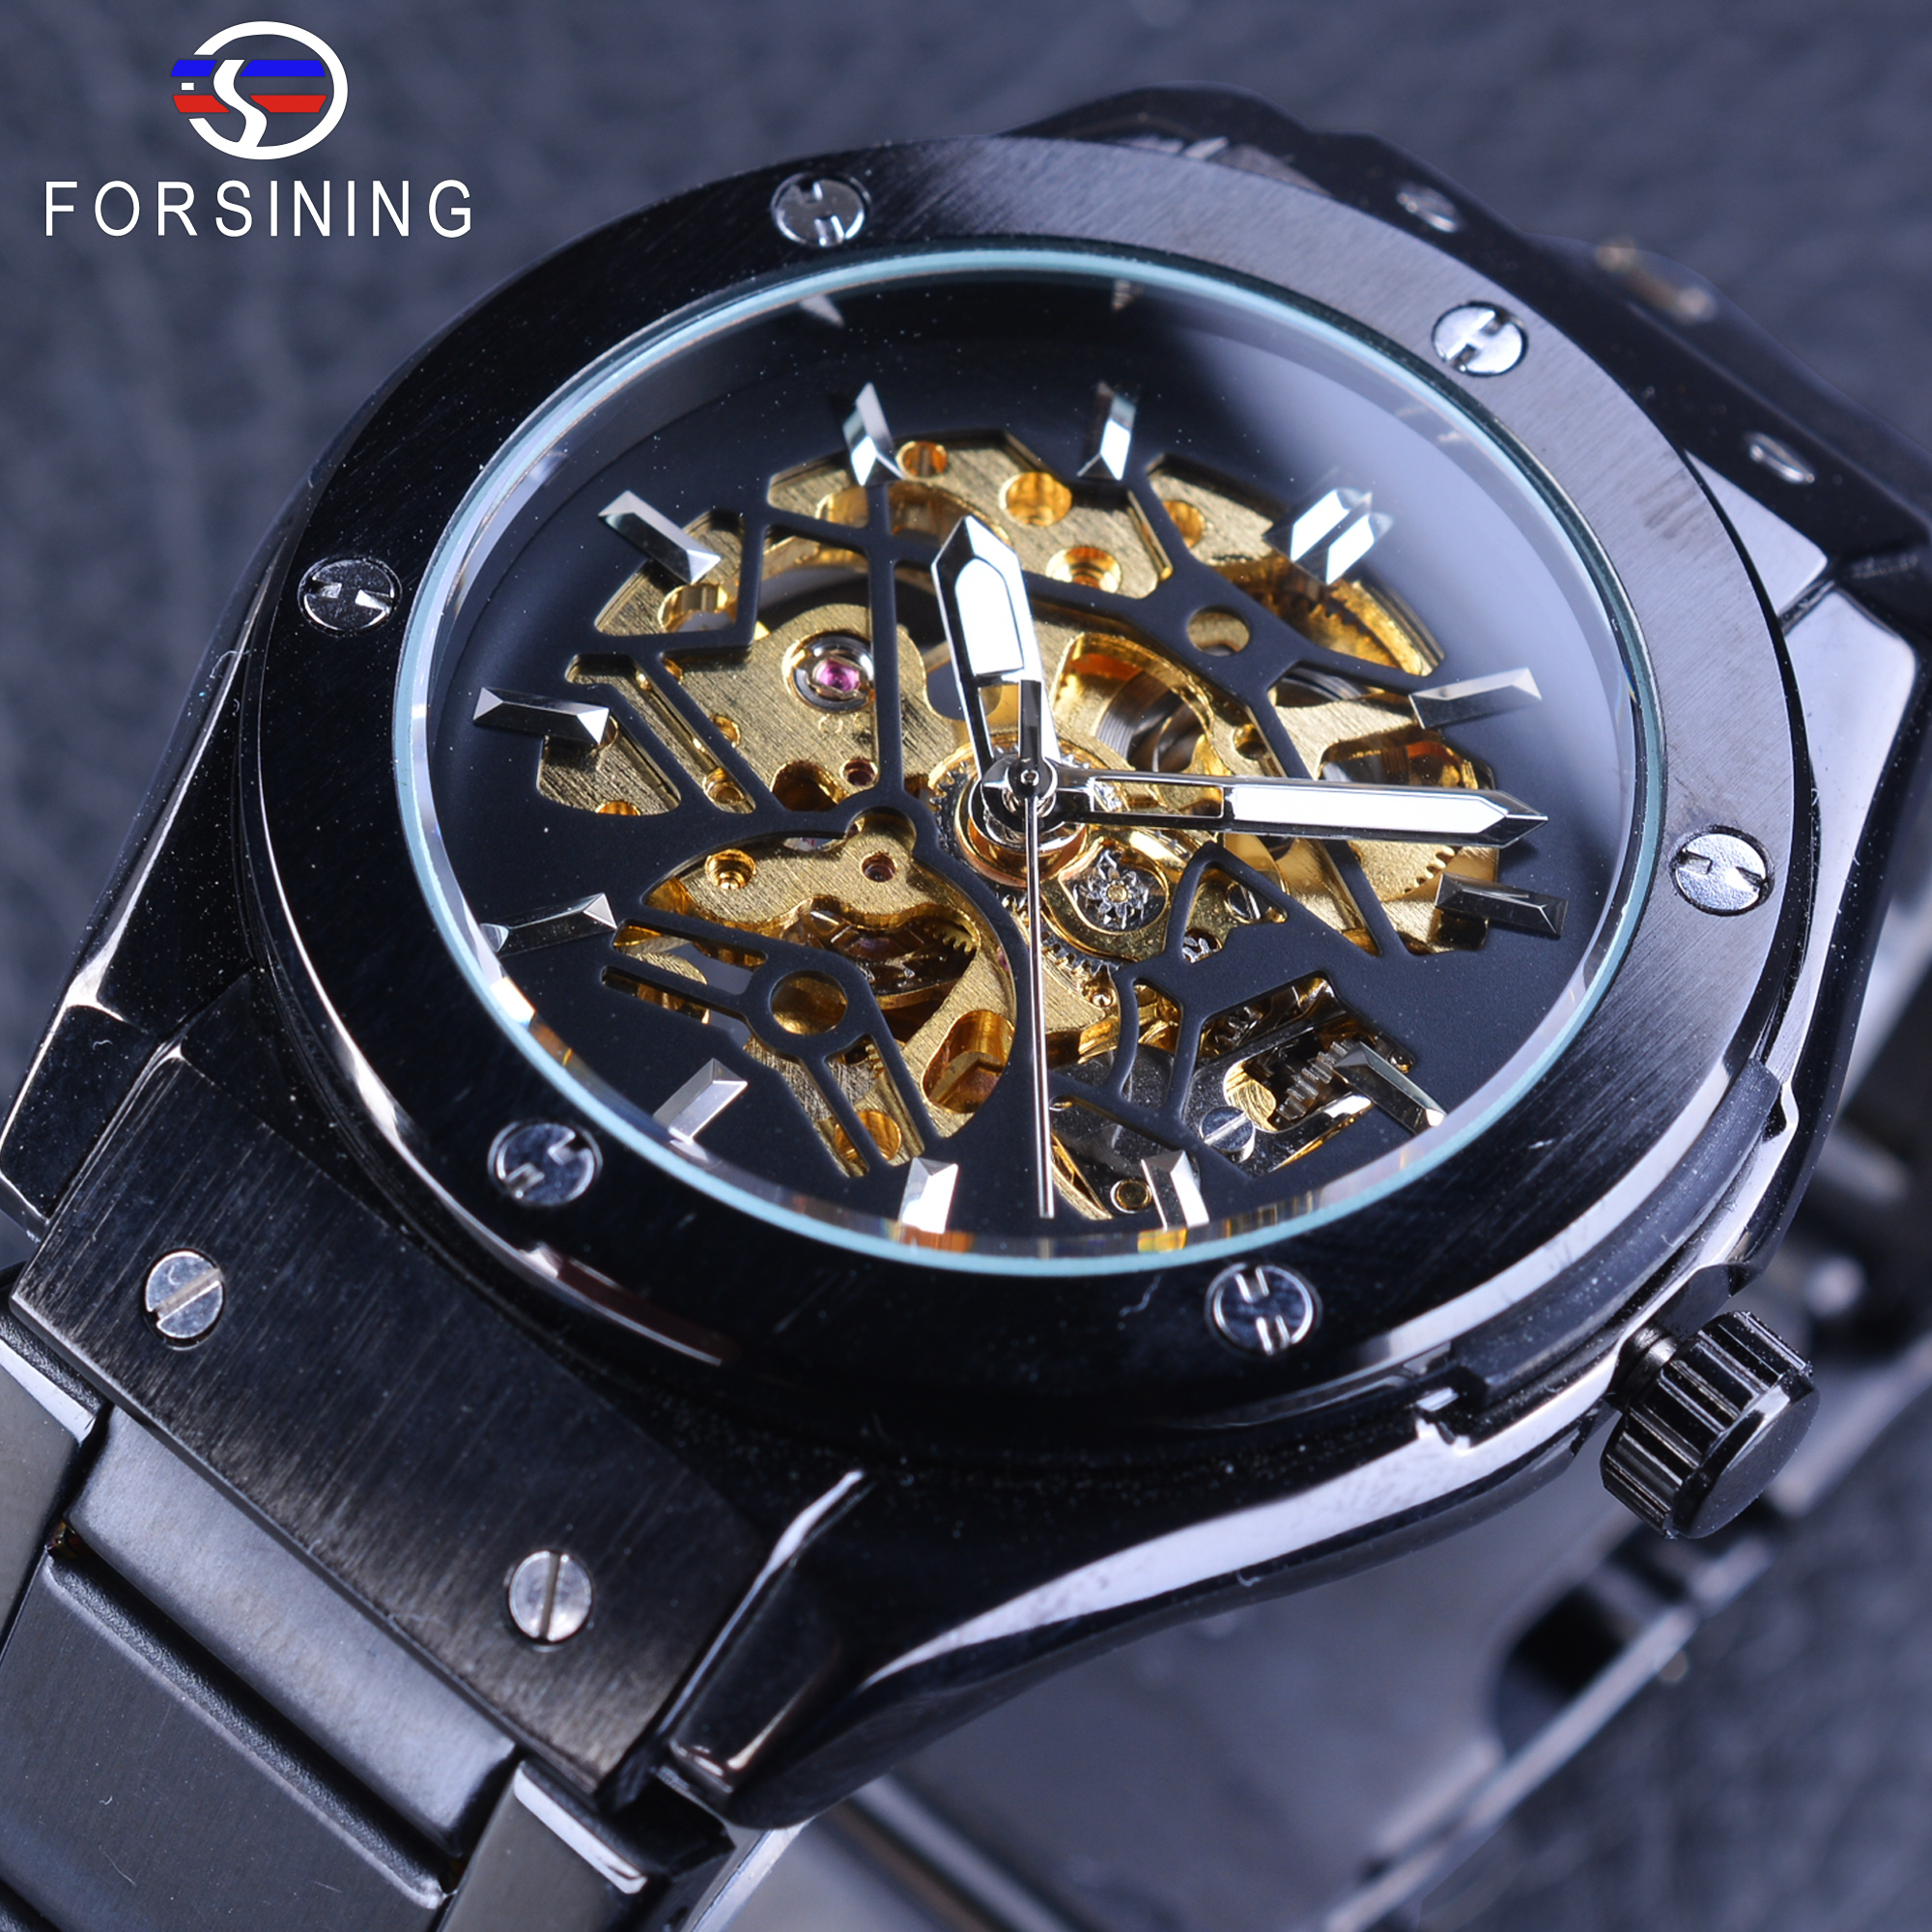 Forsining Black Stainless Steel Band Folding Clasp with Safety Golden Gear Movement Skeleton Men's Automatic Self-wind Watches forsining golden stainless steel sport watch steampunk men watch luminous openwork mechanical watches folding clasp with safety